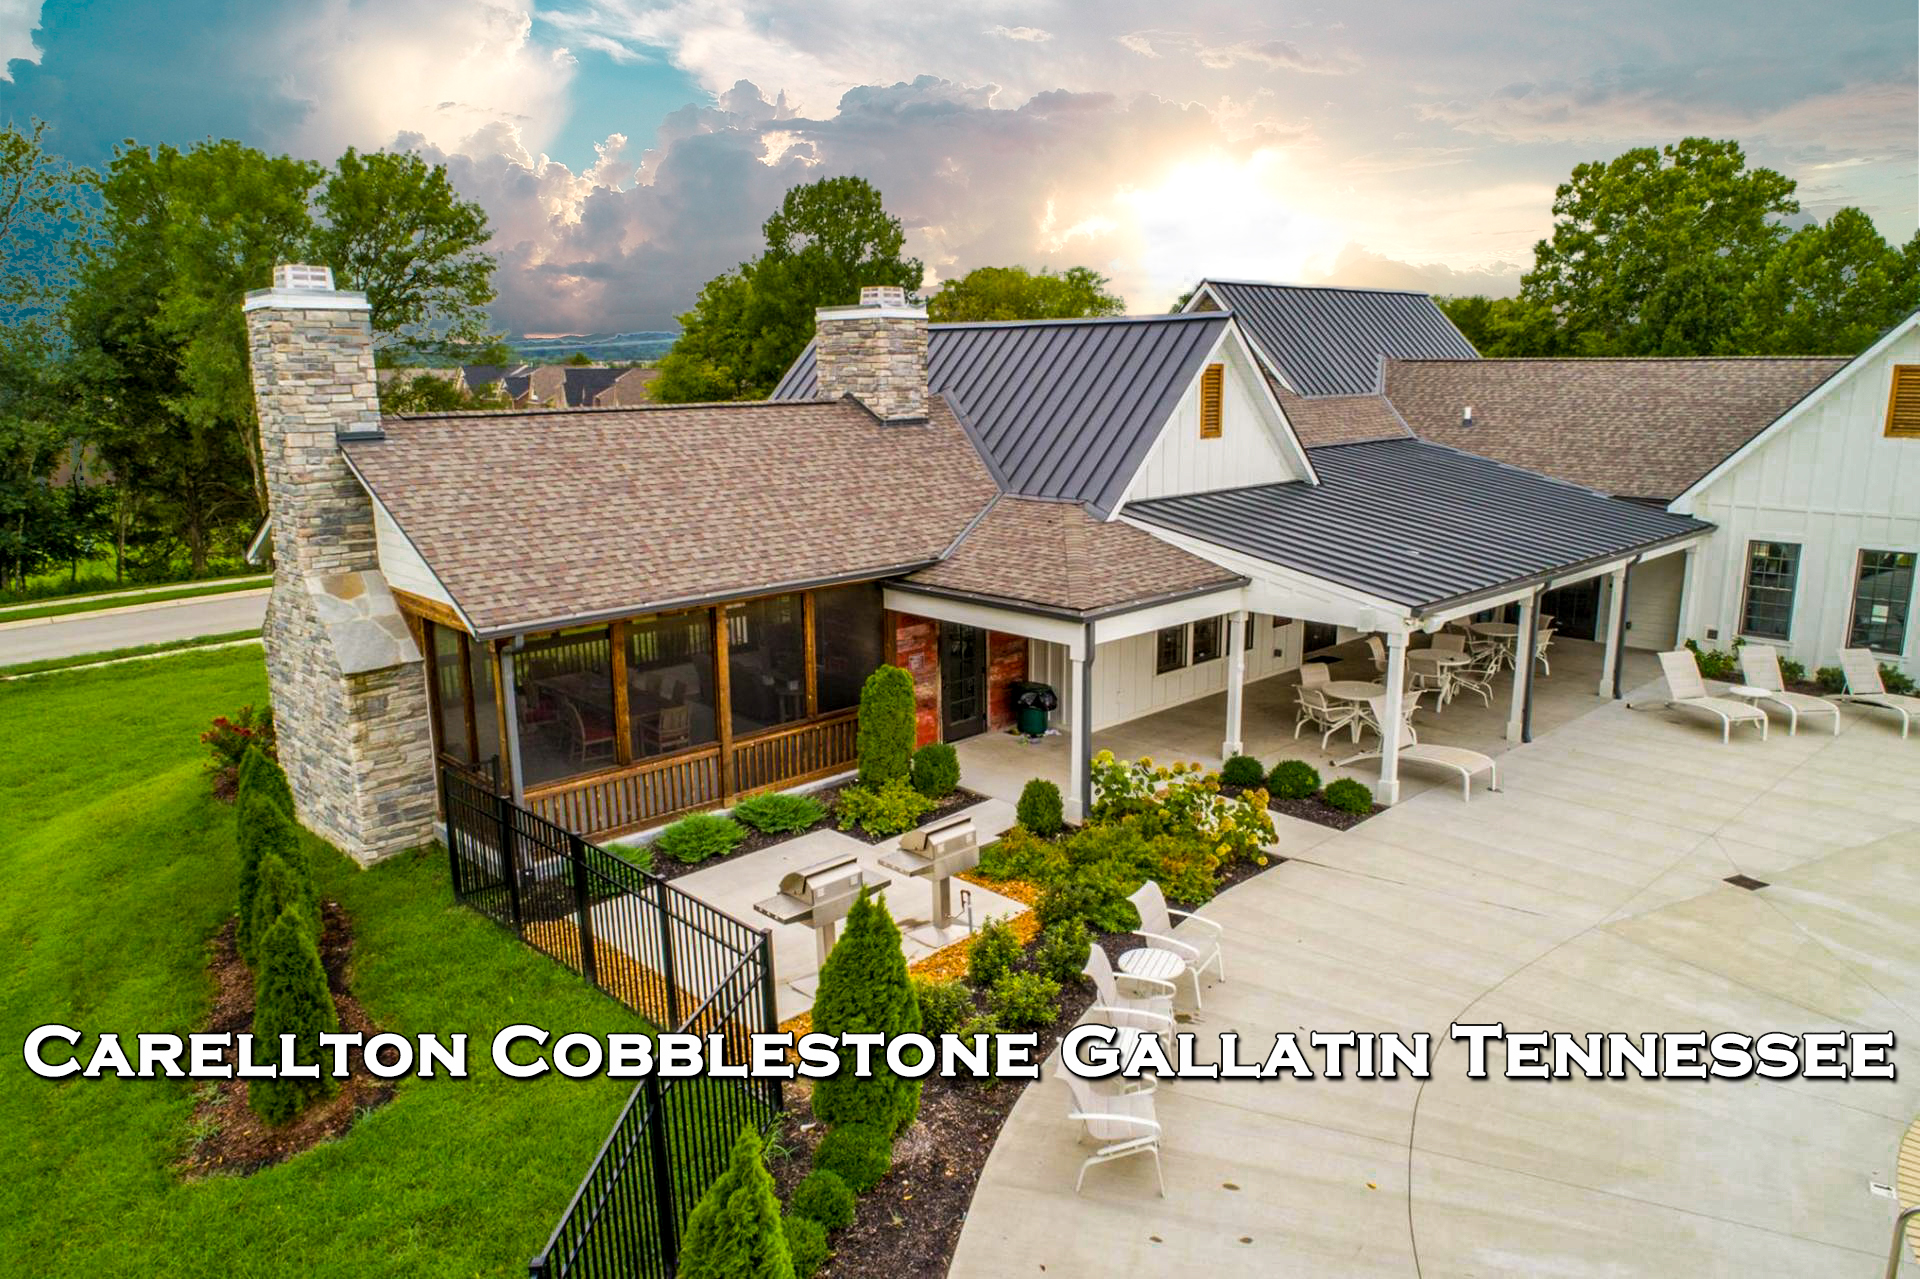 Carellton Cobblestone Gallatin Tennessee